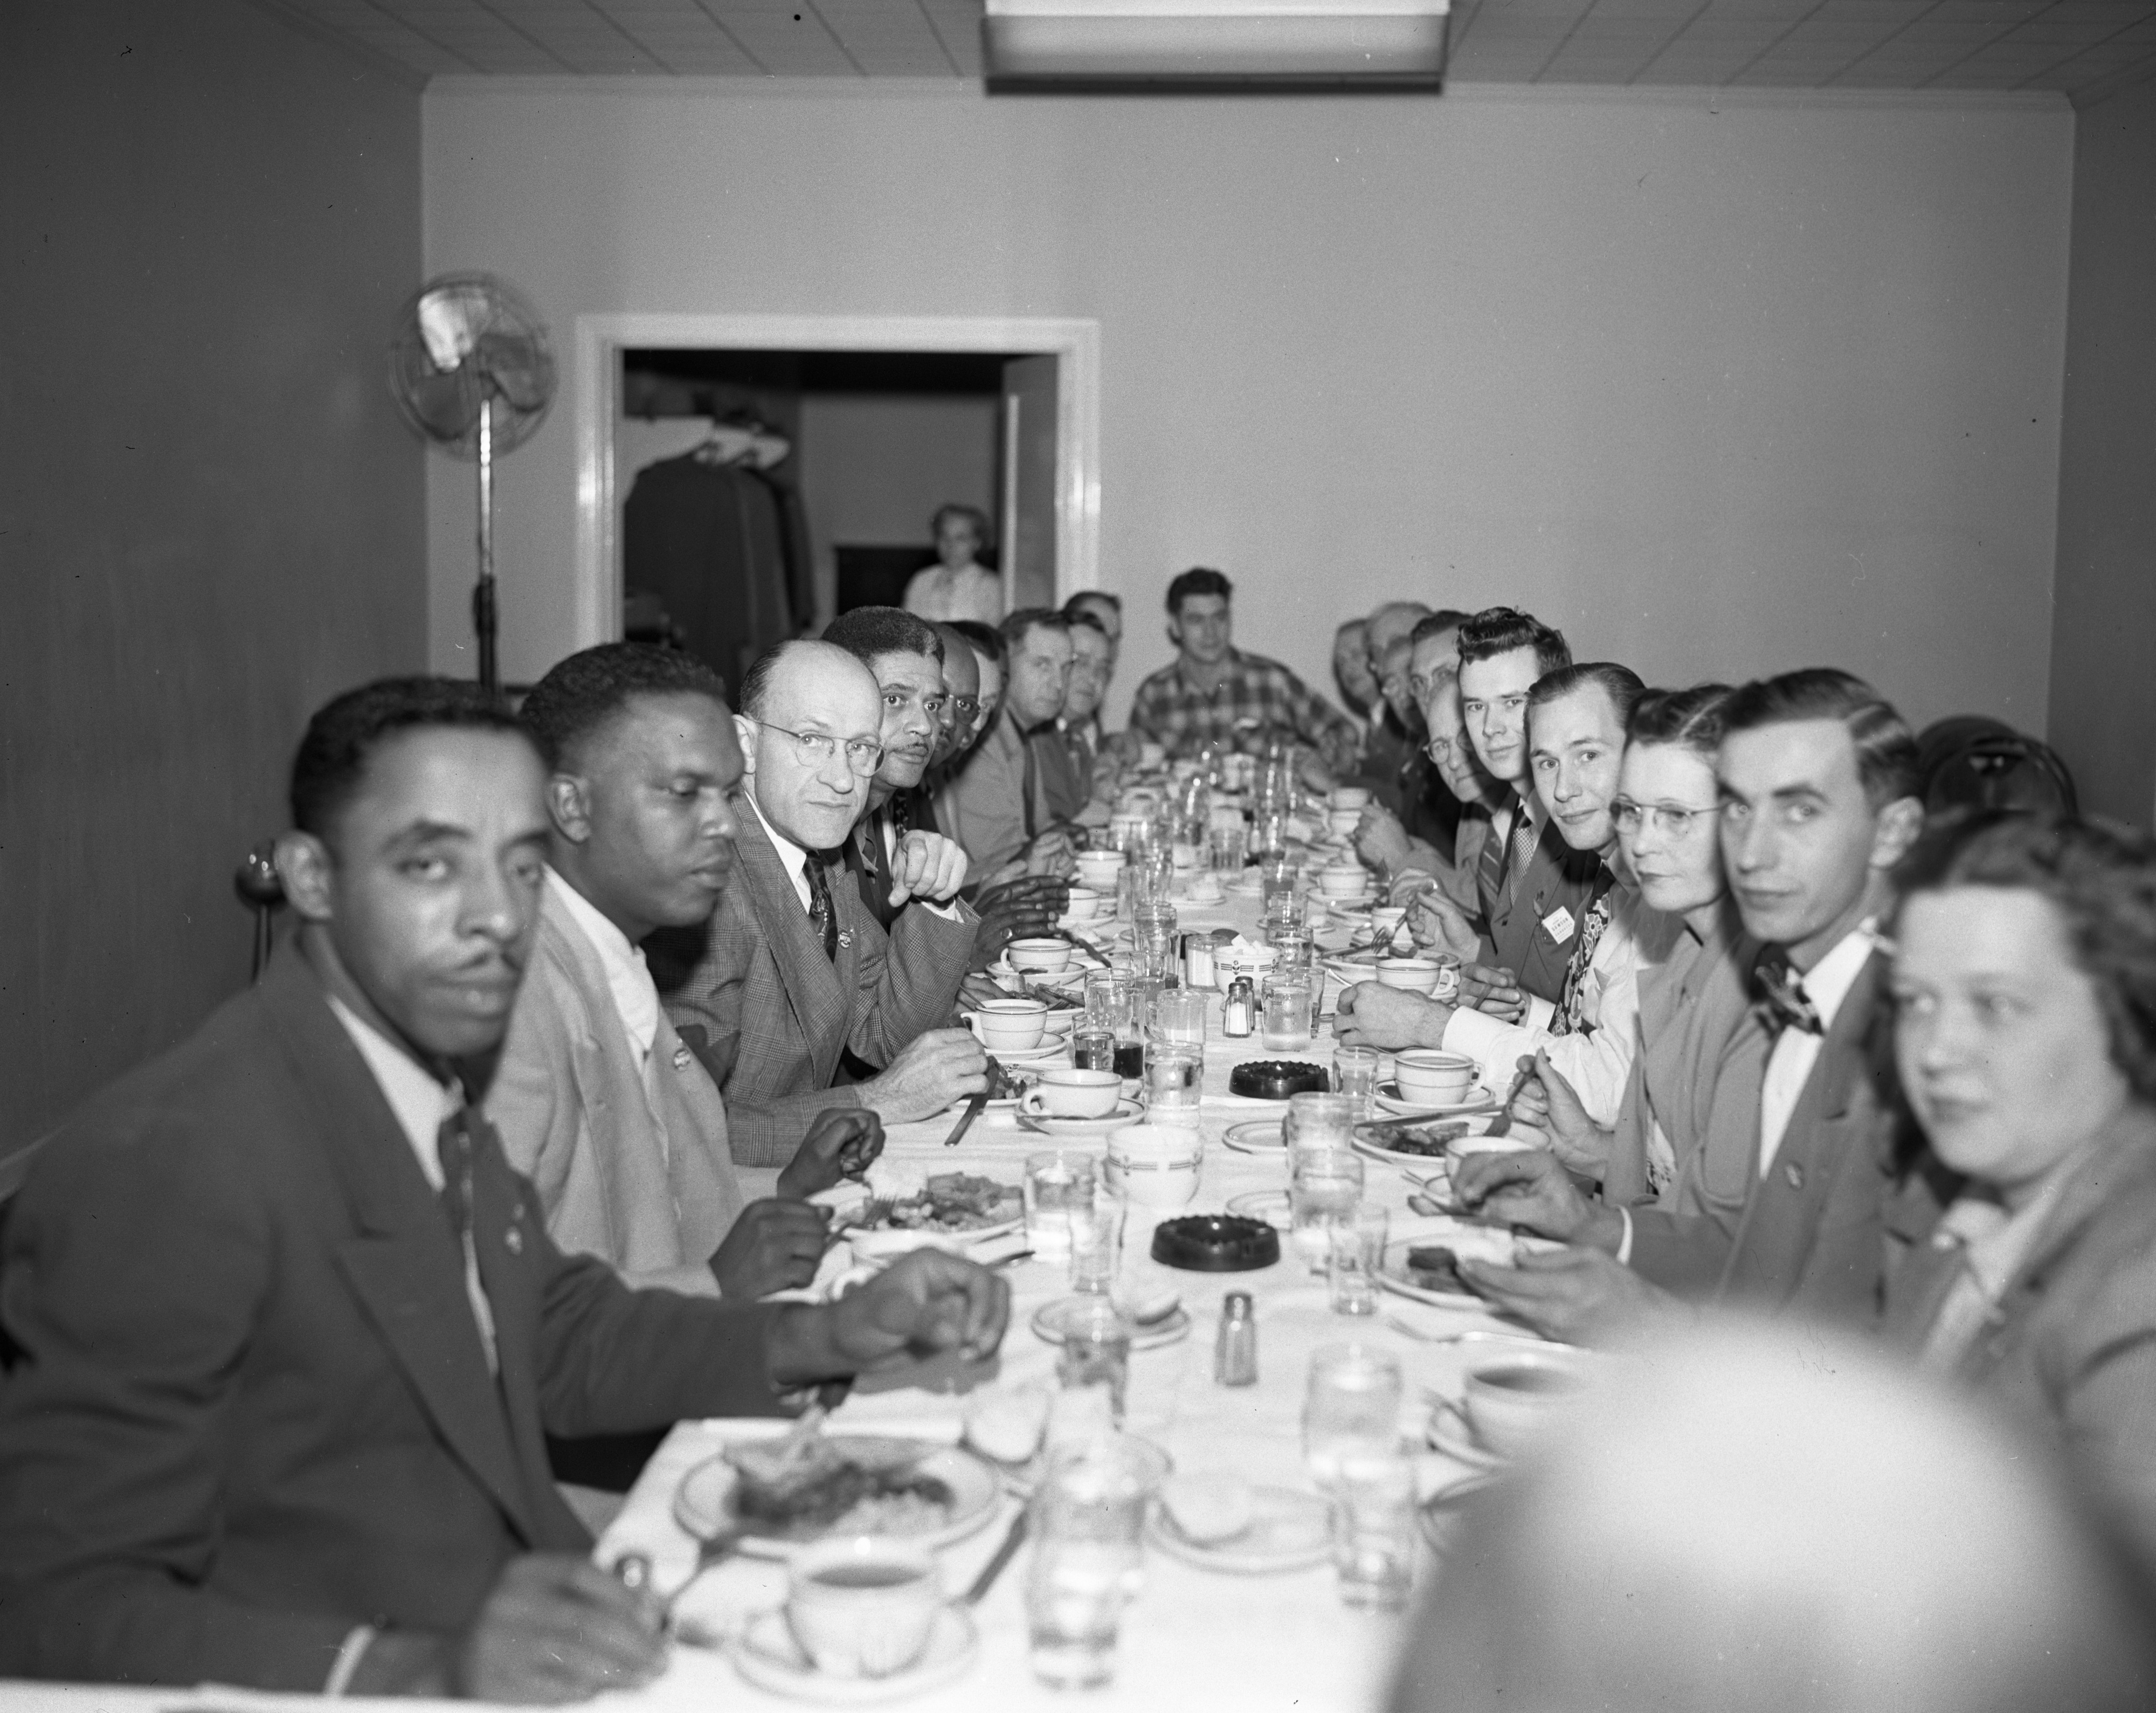 Labor leaders hold a union reorganization meeting at the Allenel Hotel, October 1950 image